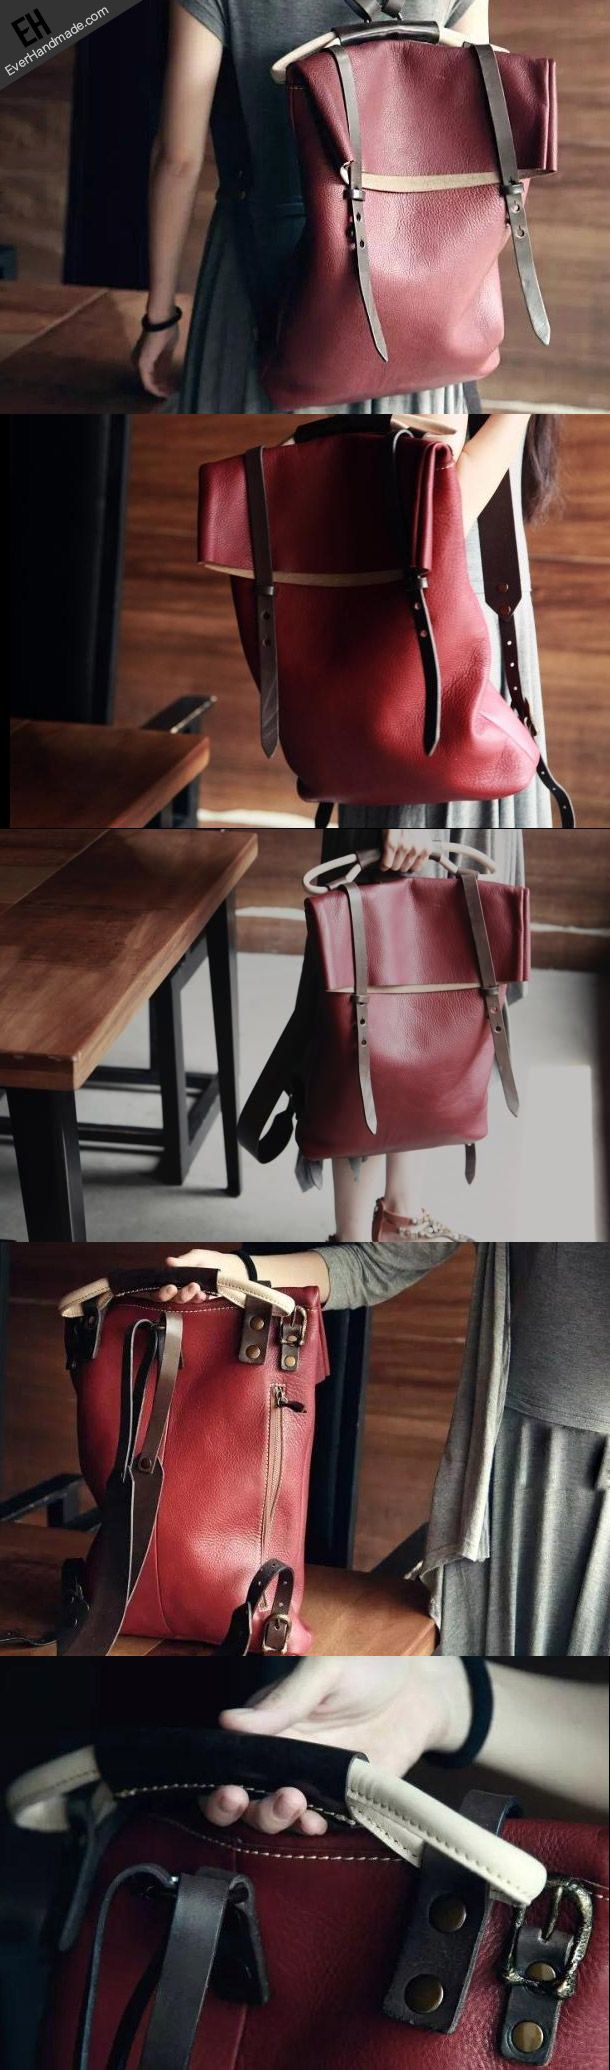 Handmade leather red backpack bags for women